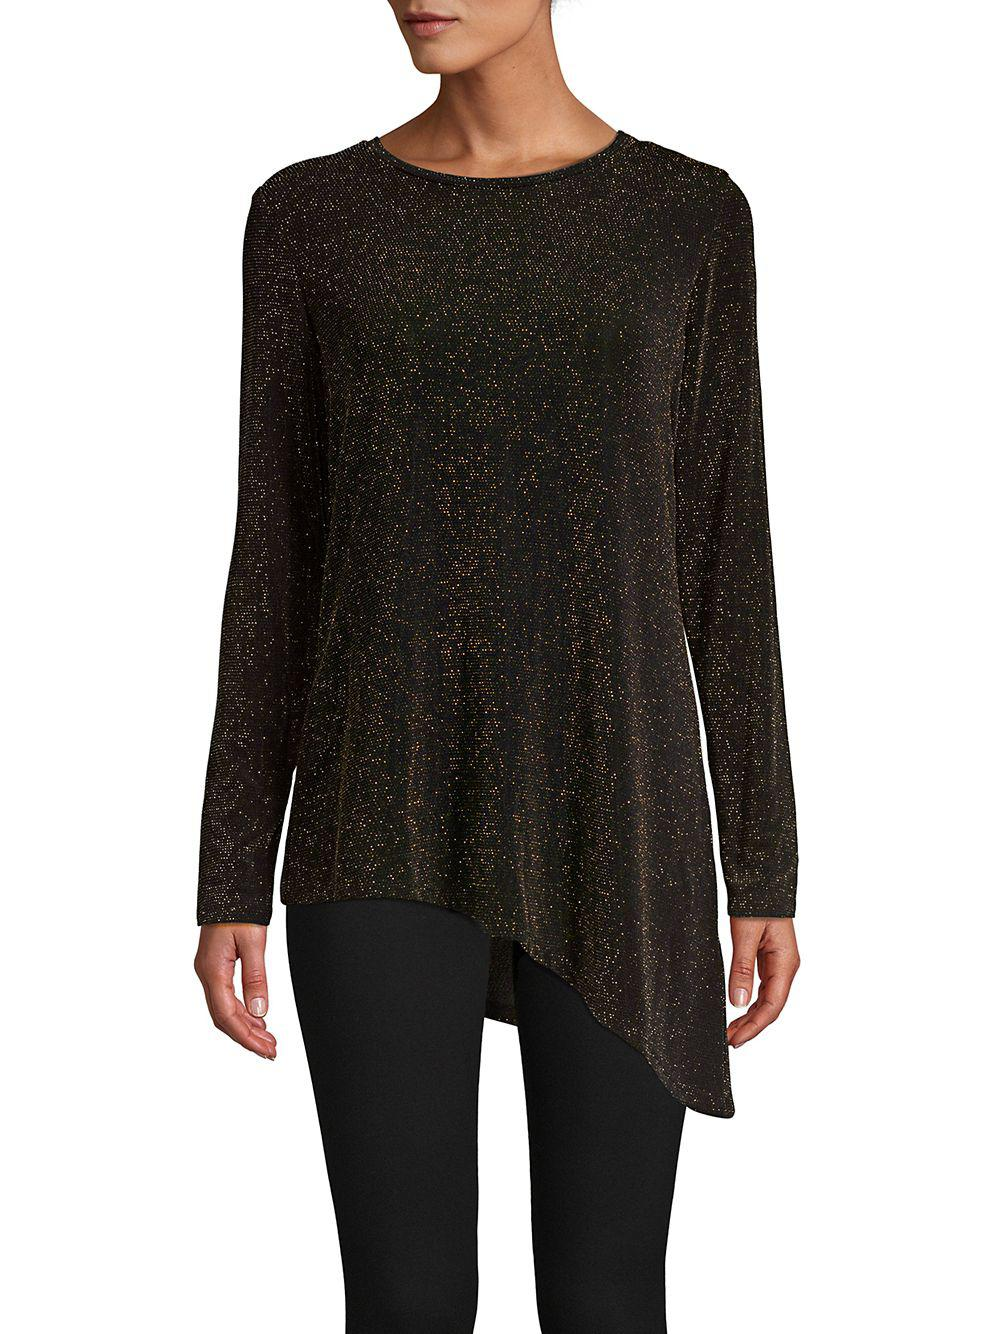 a71cd466b61 Lyst - Calvin Klein Asymmetric Knit Top in Black